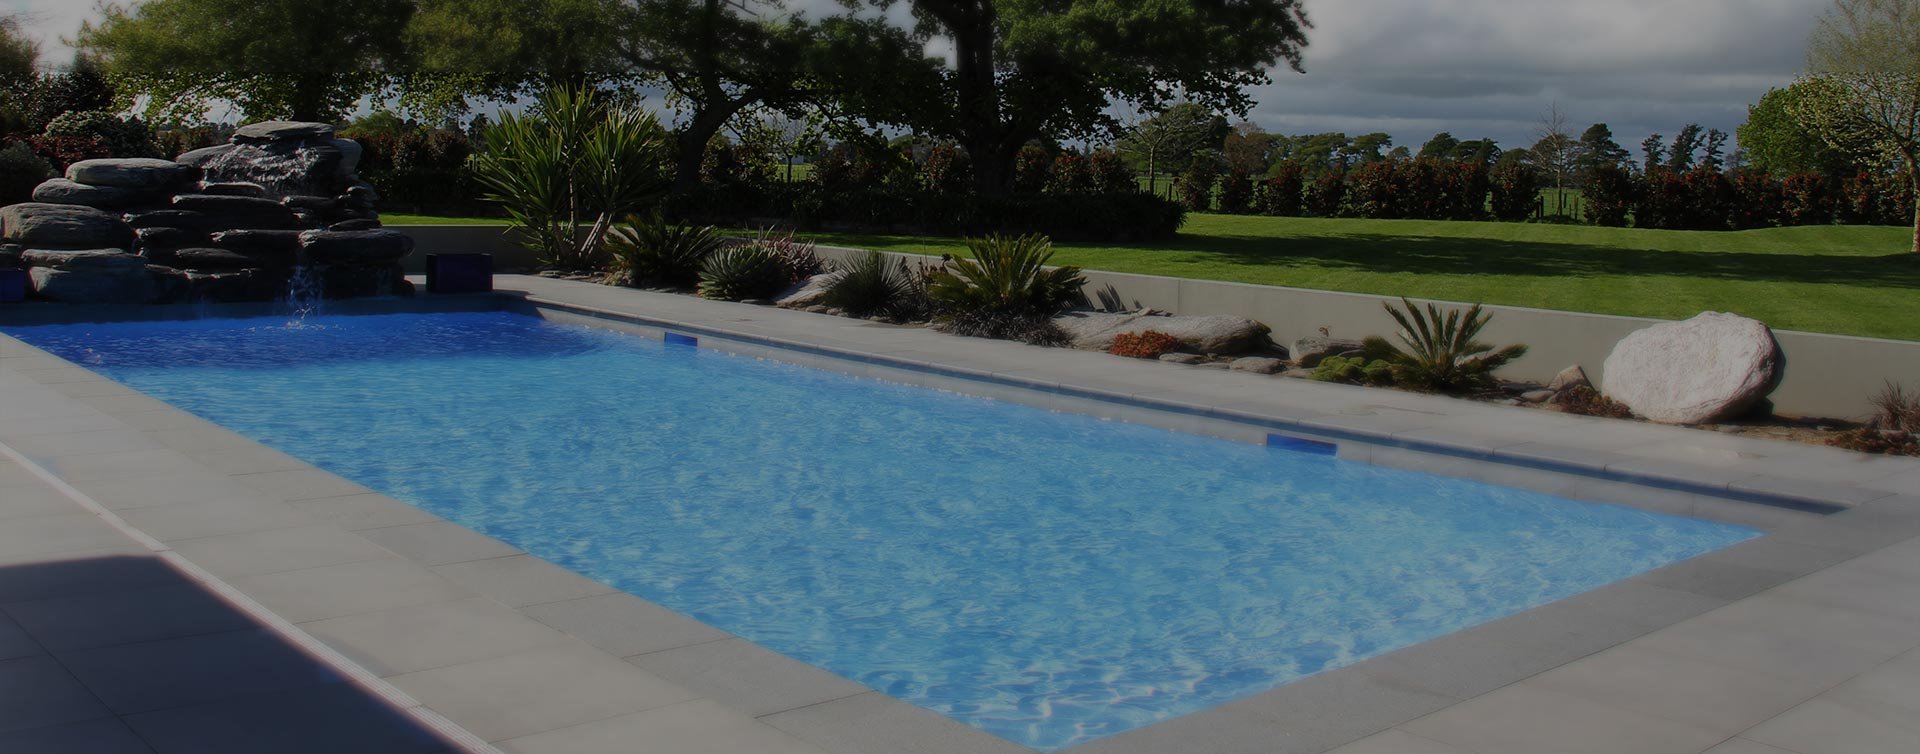 Remarkable swimming pool designs nz gallery simple for Pool design hamilton nj